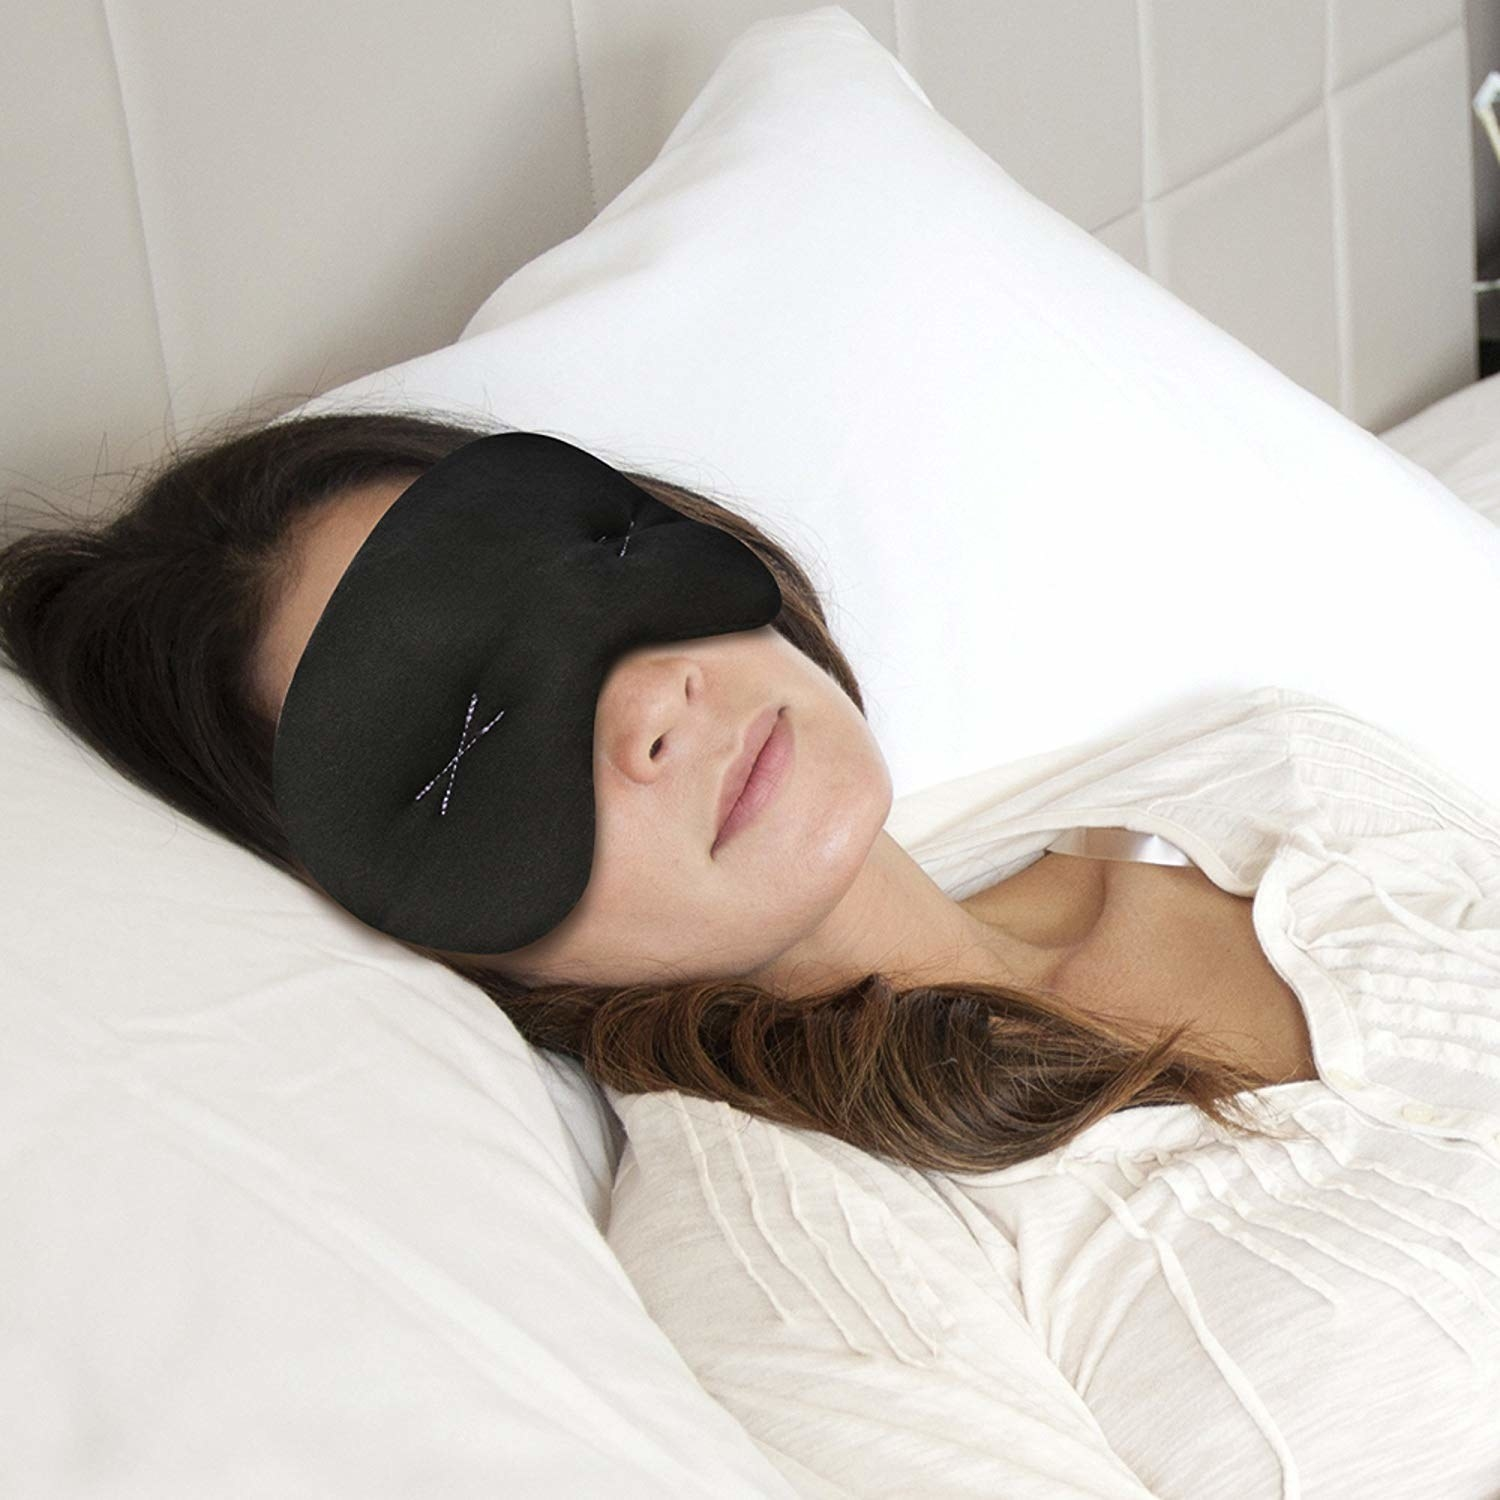 a person with the black compression eye mask on laying in bed